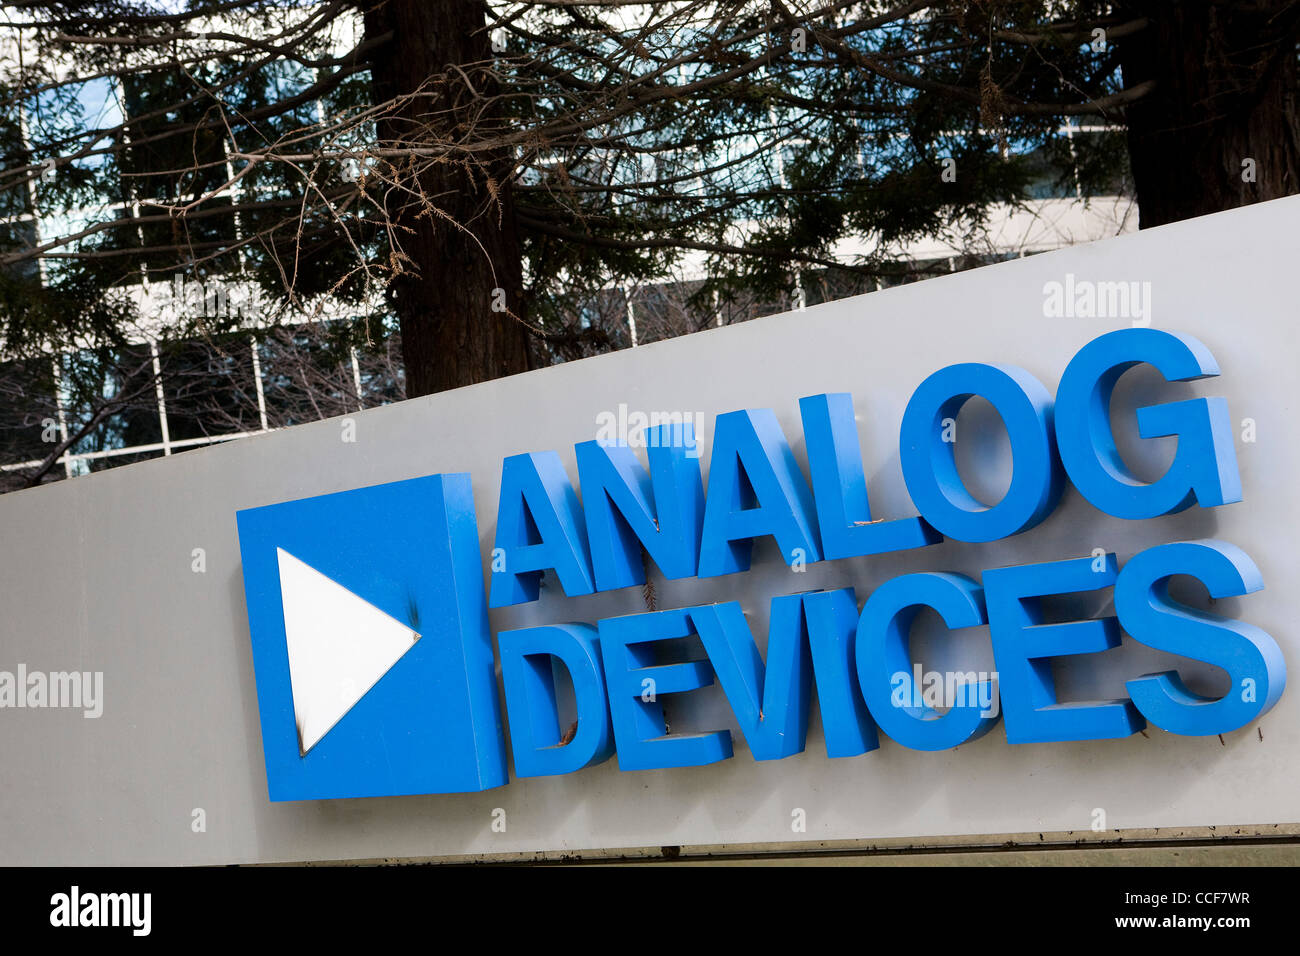 An office building occupied by Analog Devices. - Stock Image